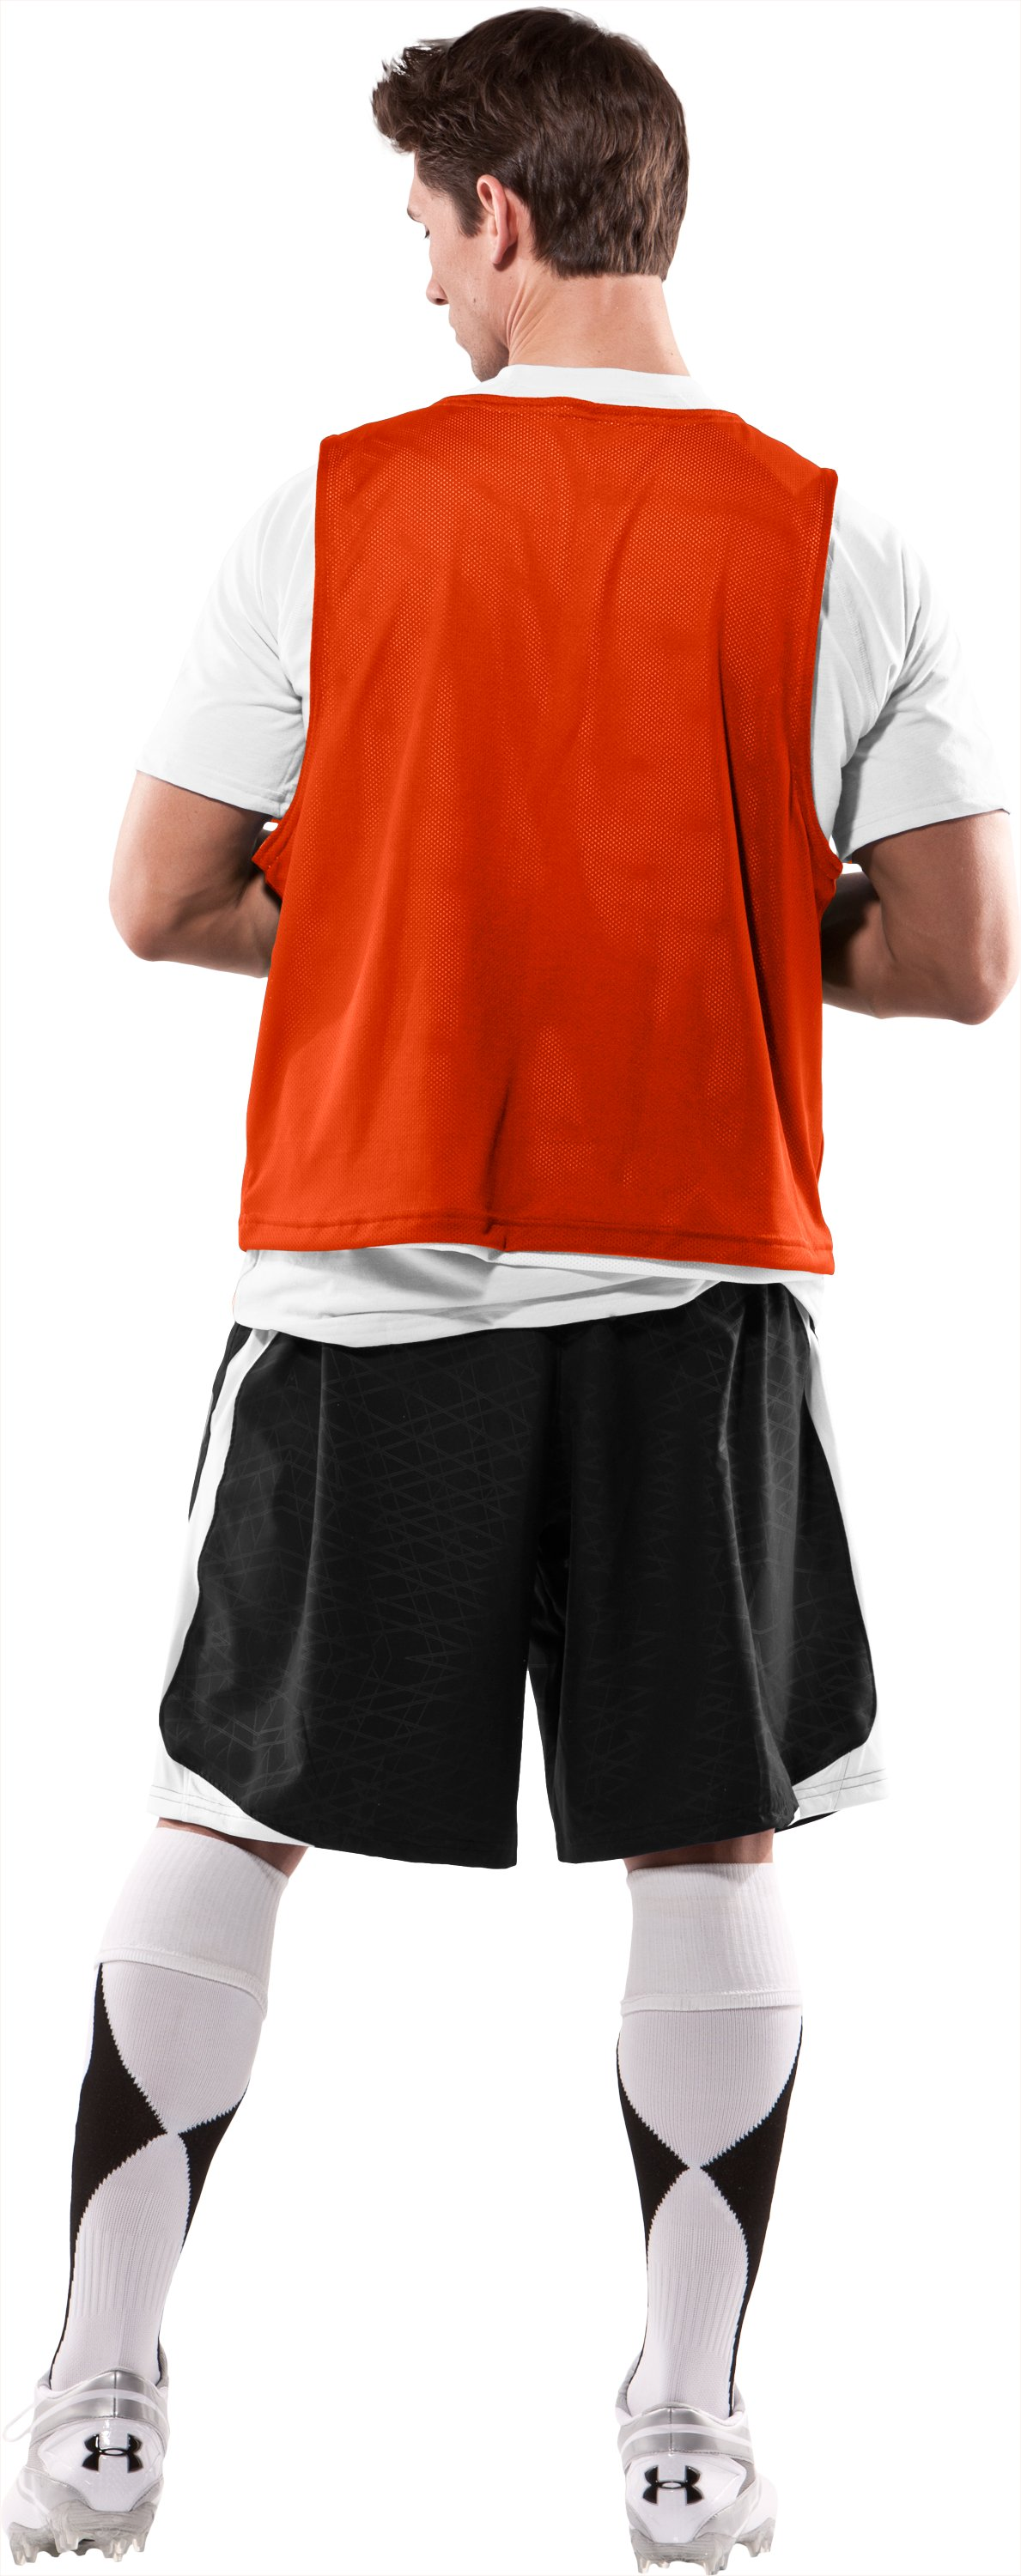 Men's Practice Jersey, Dark Orange, Back